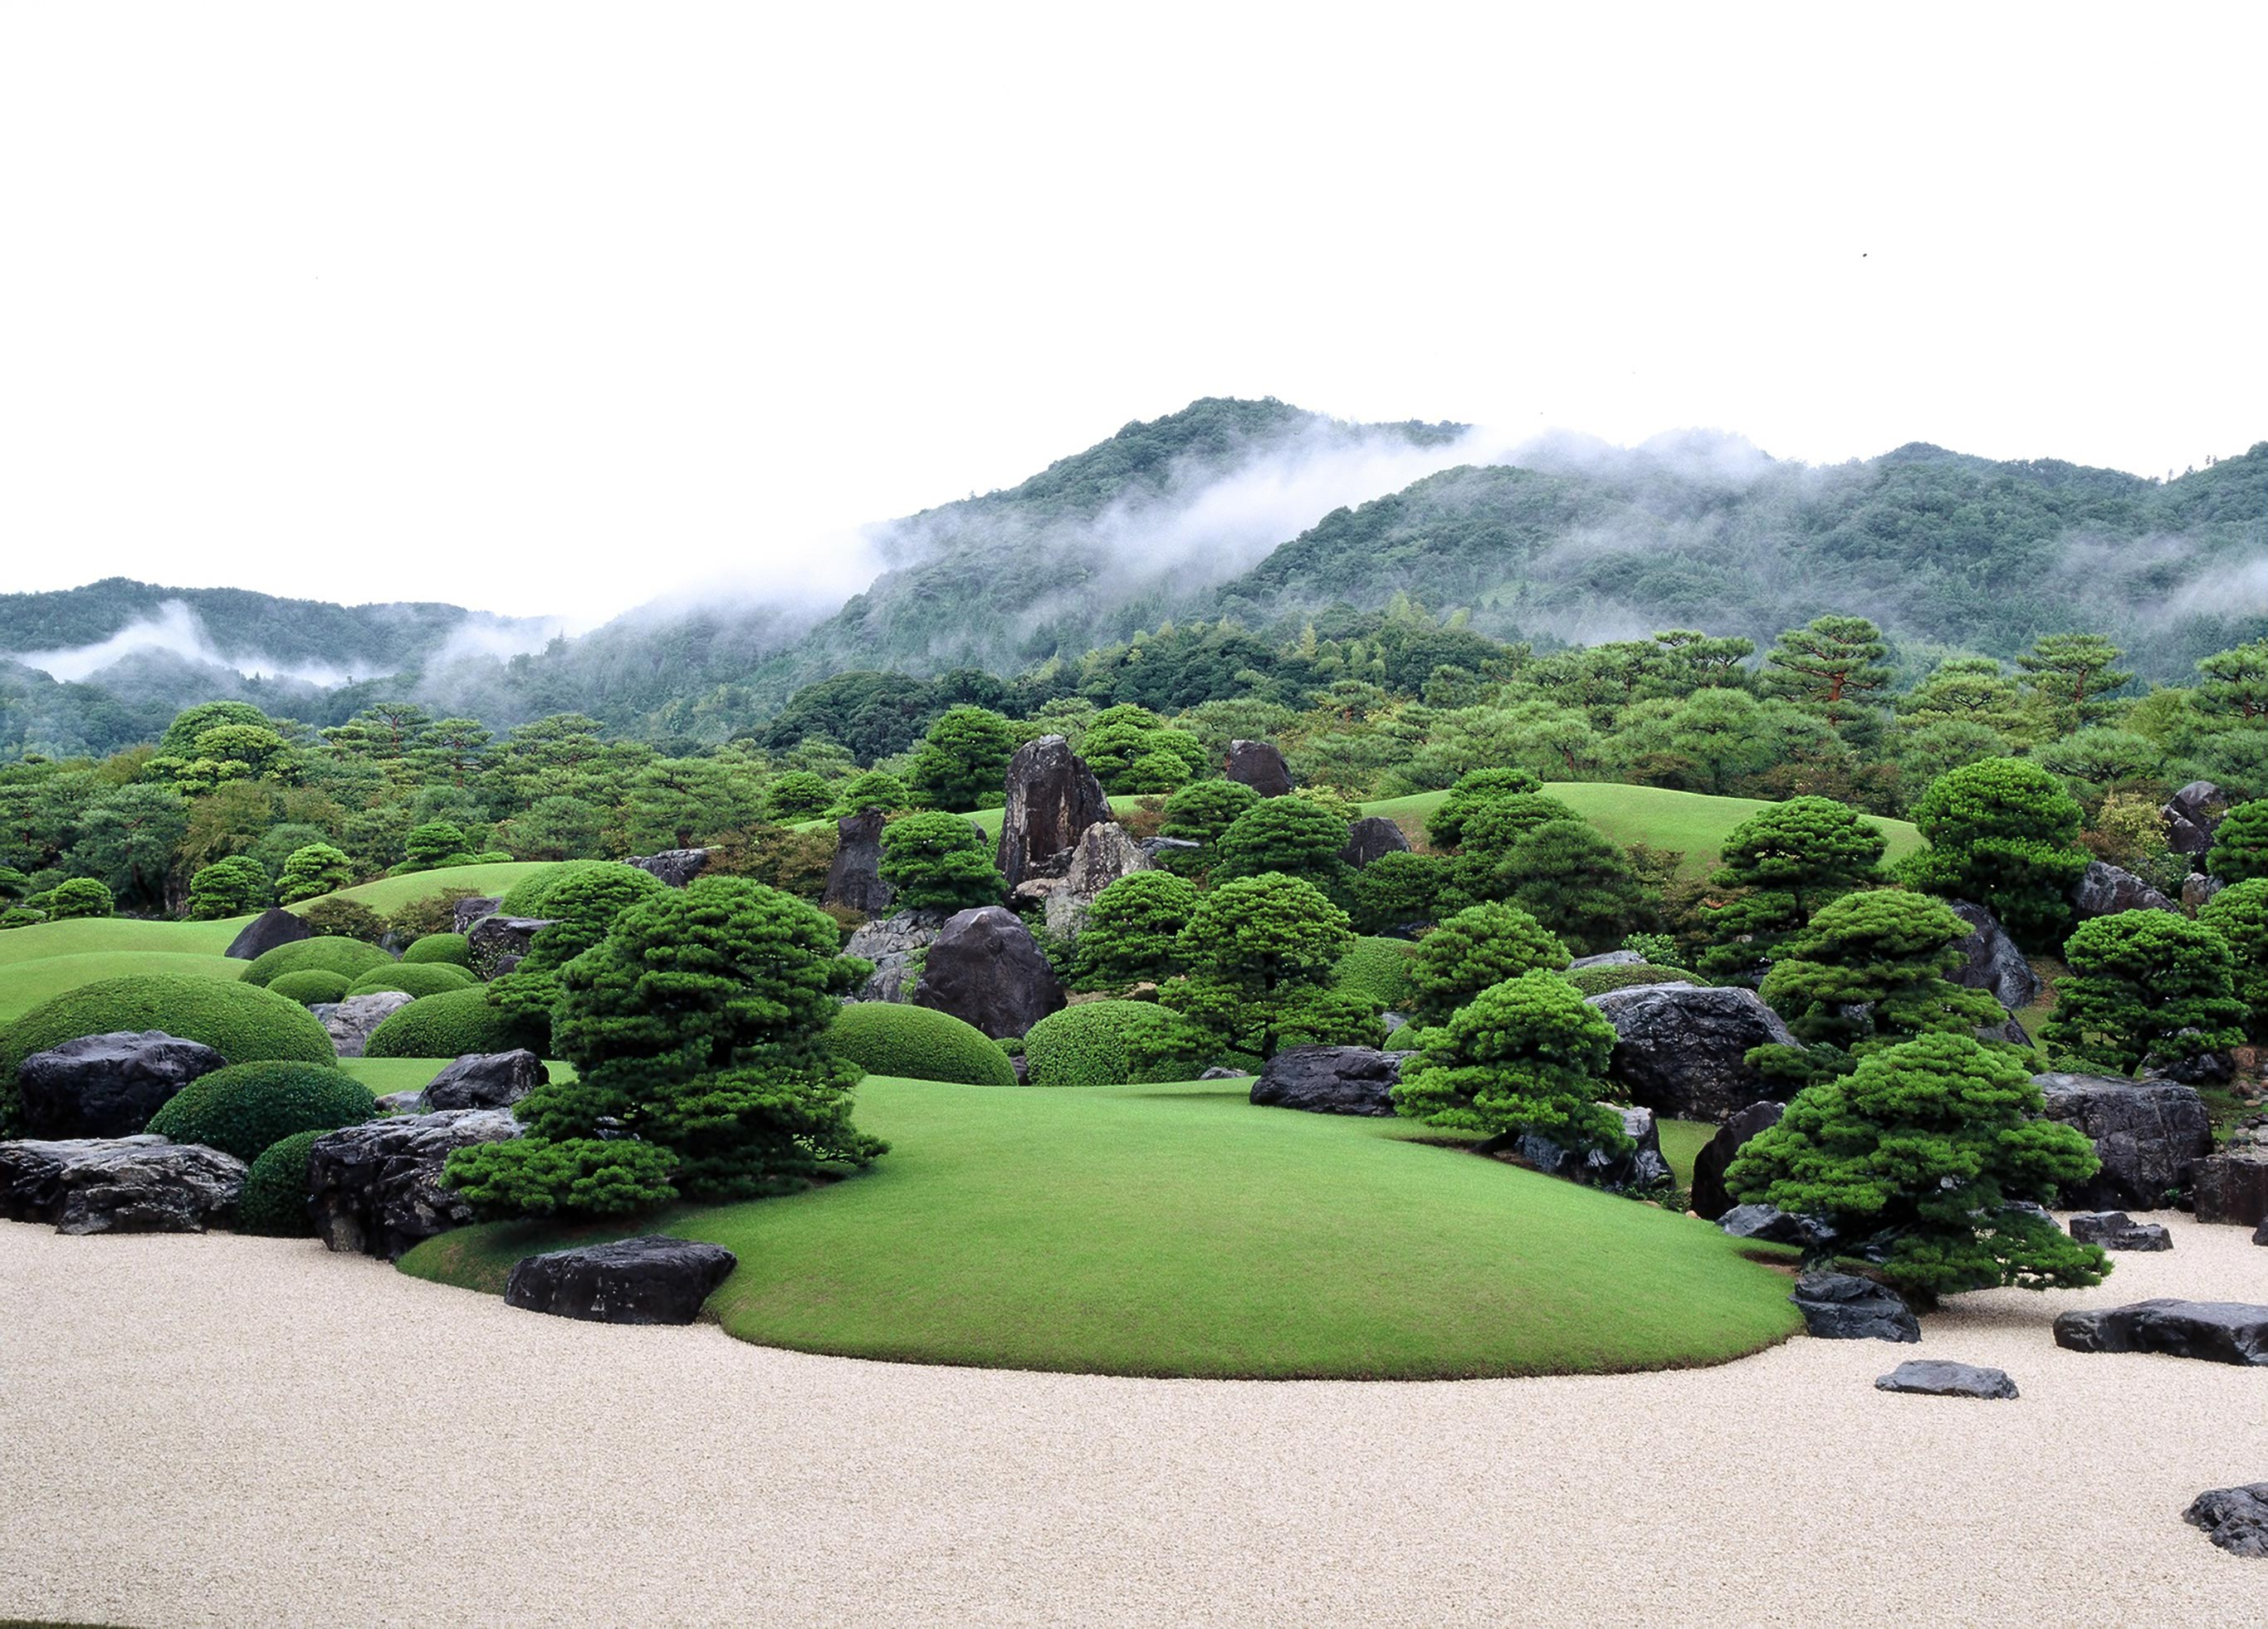 6 gardens are maintained at the Museum, including the White Sand and Blue Pines Garden inspired by the works  of Taikan Yokoyama and a Karesansui Garden (Dry Landscape Garden made up only of rocks and sand).